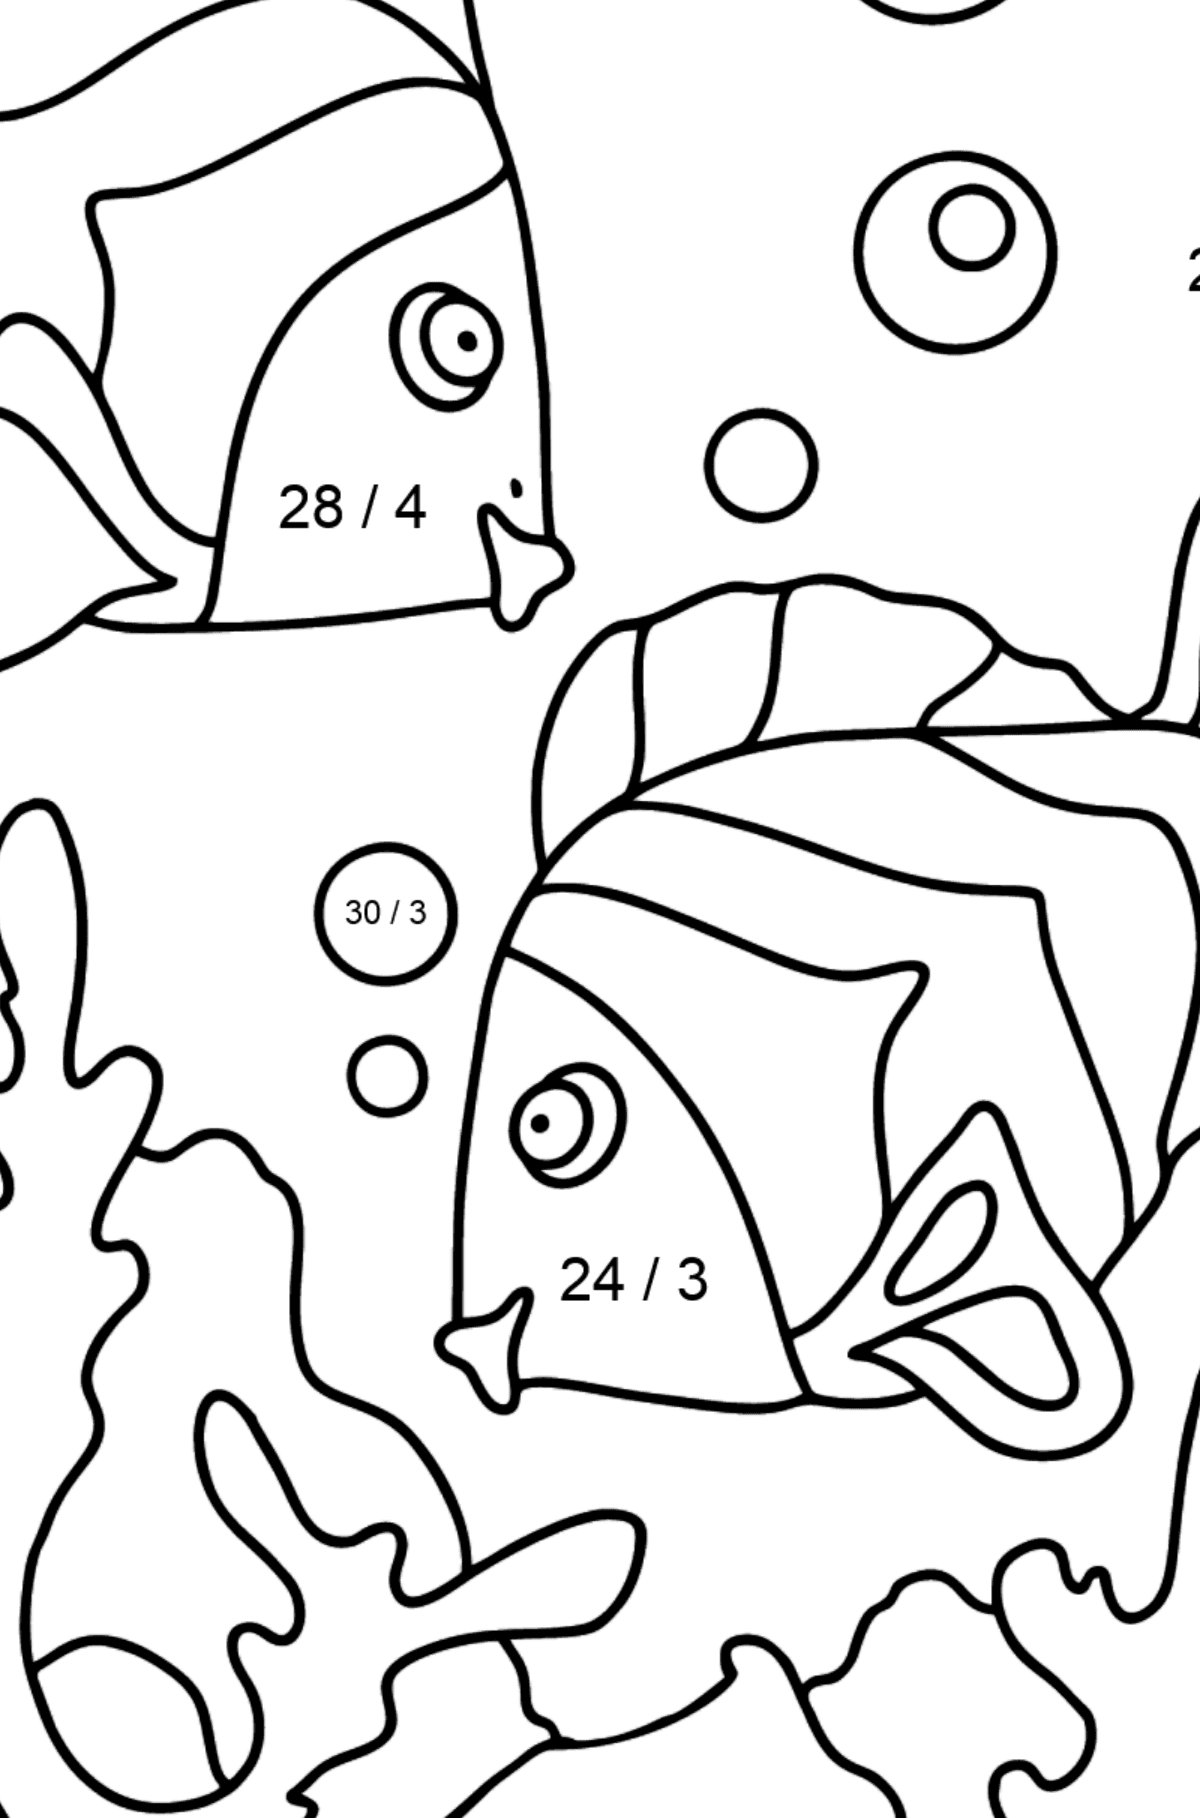 Coloring Page - Fish are Playing Happily - Math Coloring - Division for Kids